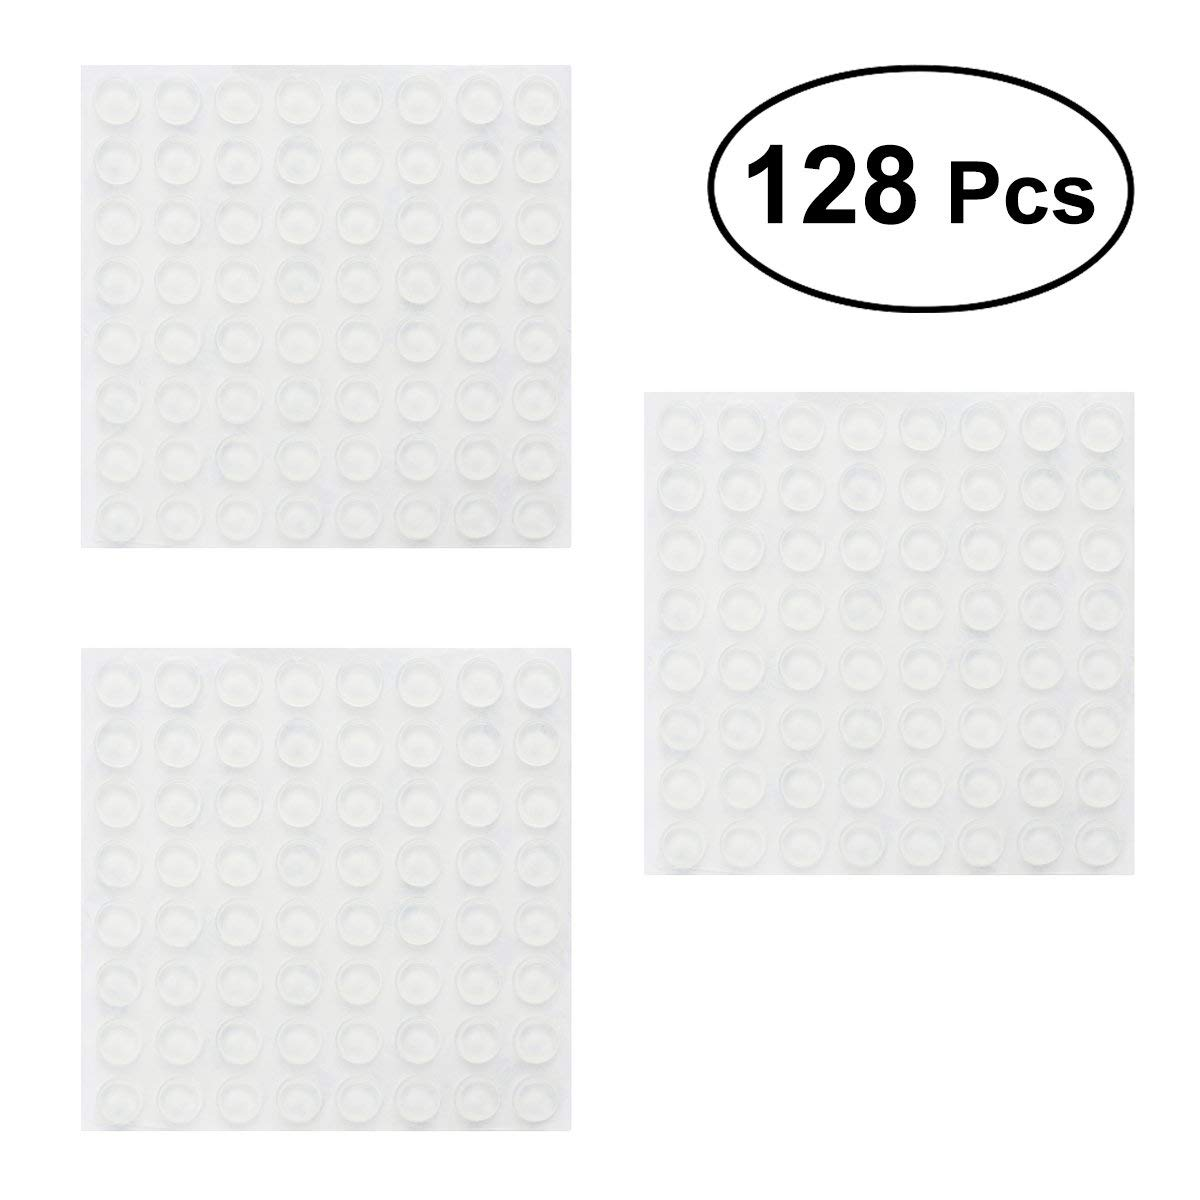 ULTNICE Rubber Door Stopper Bumpers 128pcs Self-adhesive Door Stoppers Wall Protectors for Speakers Electronics Furniture (12x4mm)